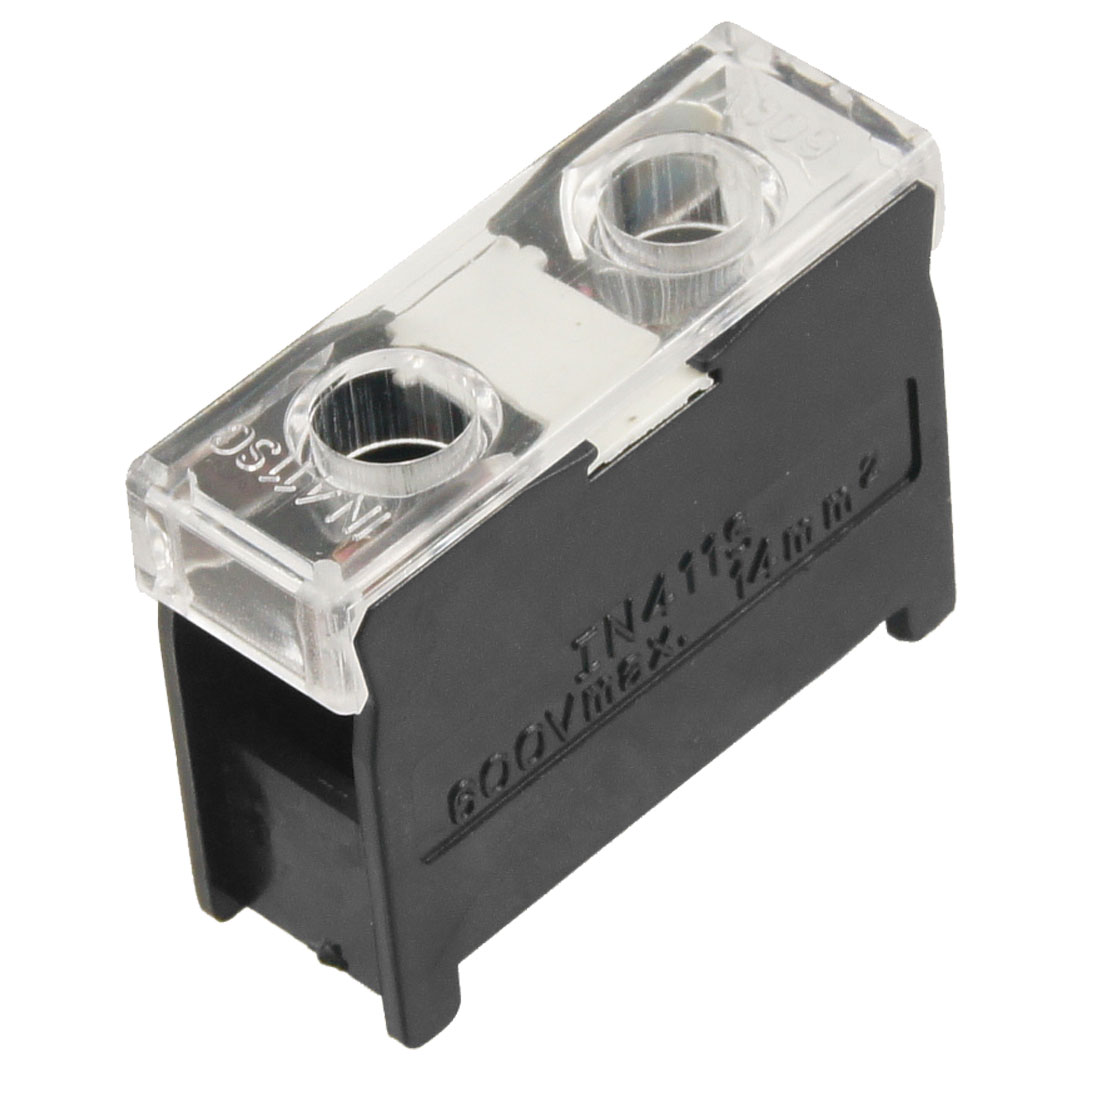 Electrical-2-Screw-Terminals-Block-Wire-Connector-600V-60A